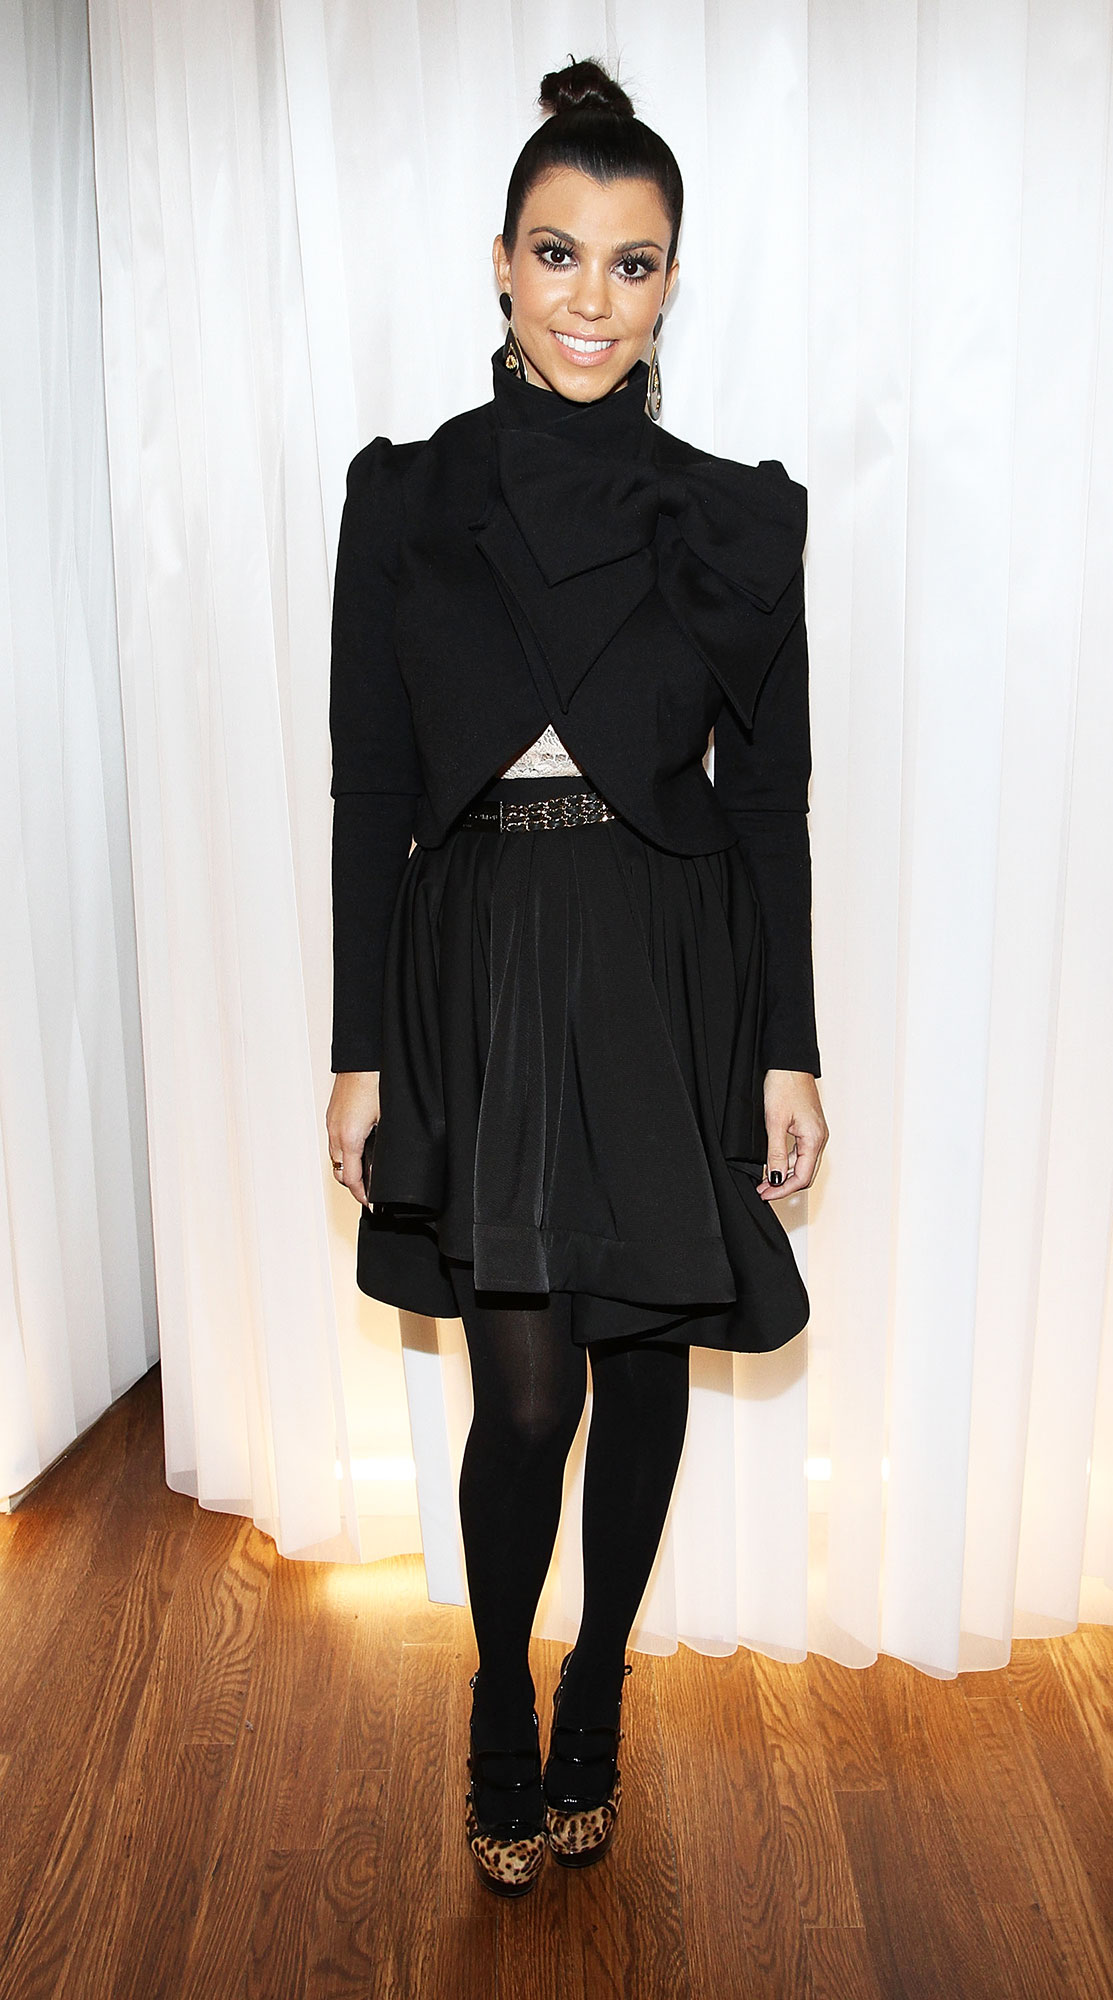 Happy 40th Birthday, Kourtney Kardashian - It was all about the black for the reality star in a Funktional black miniskirt and blazer at the opening of the NYC DASH boutique.